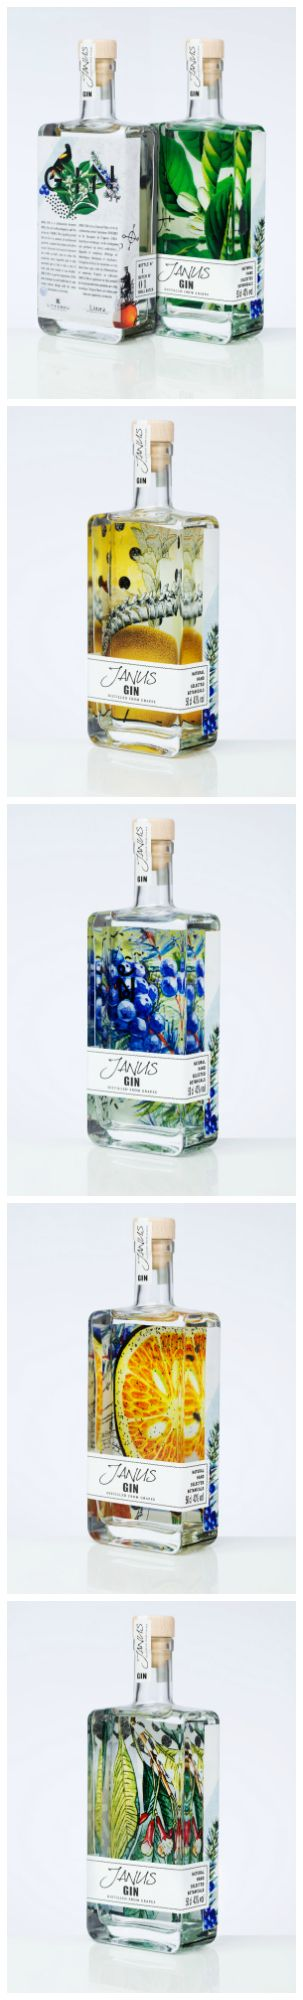 """LINEA The Spirit Valley - Janus Gin #packaging """"This digitally printed lable of Gin Is a mixture of multicolored gradients, complex illustrations and other visuals."""" World Packaging Design Society"""